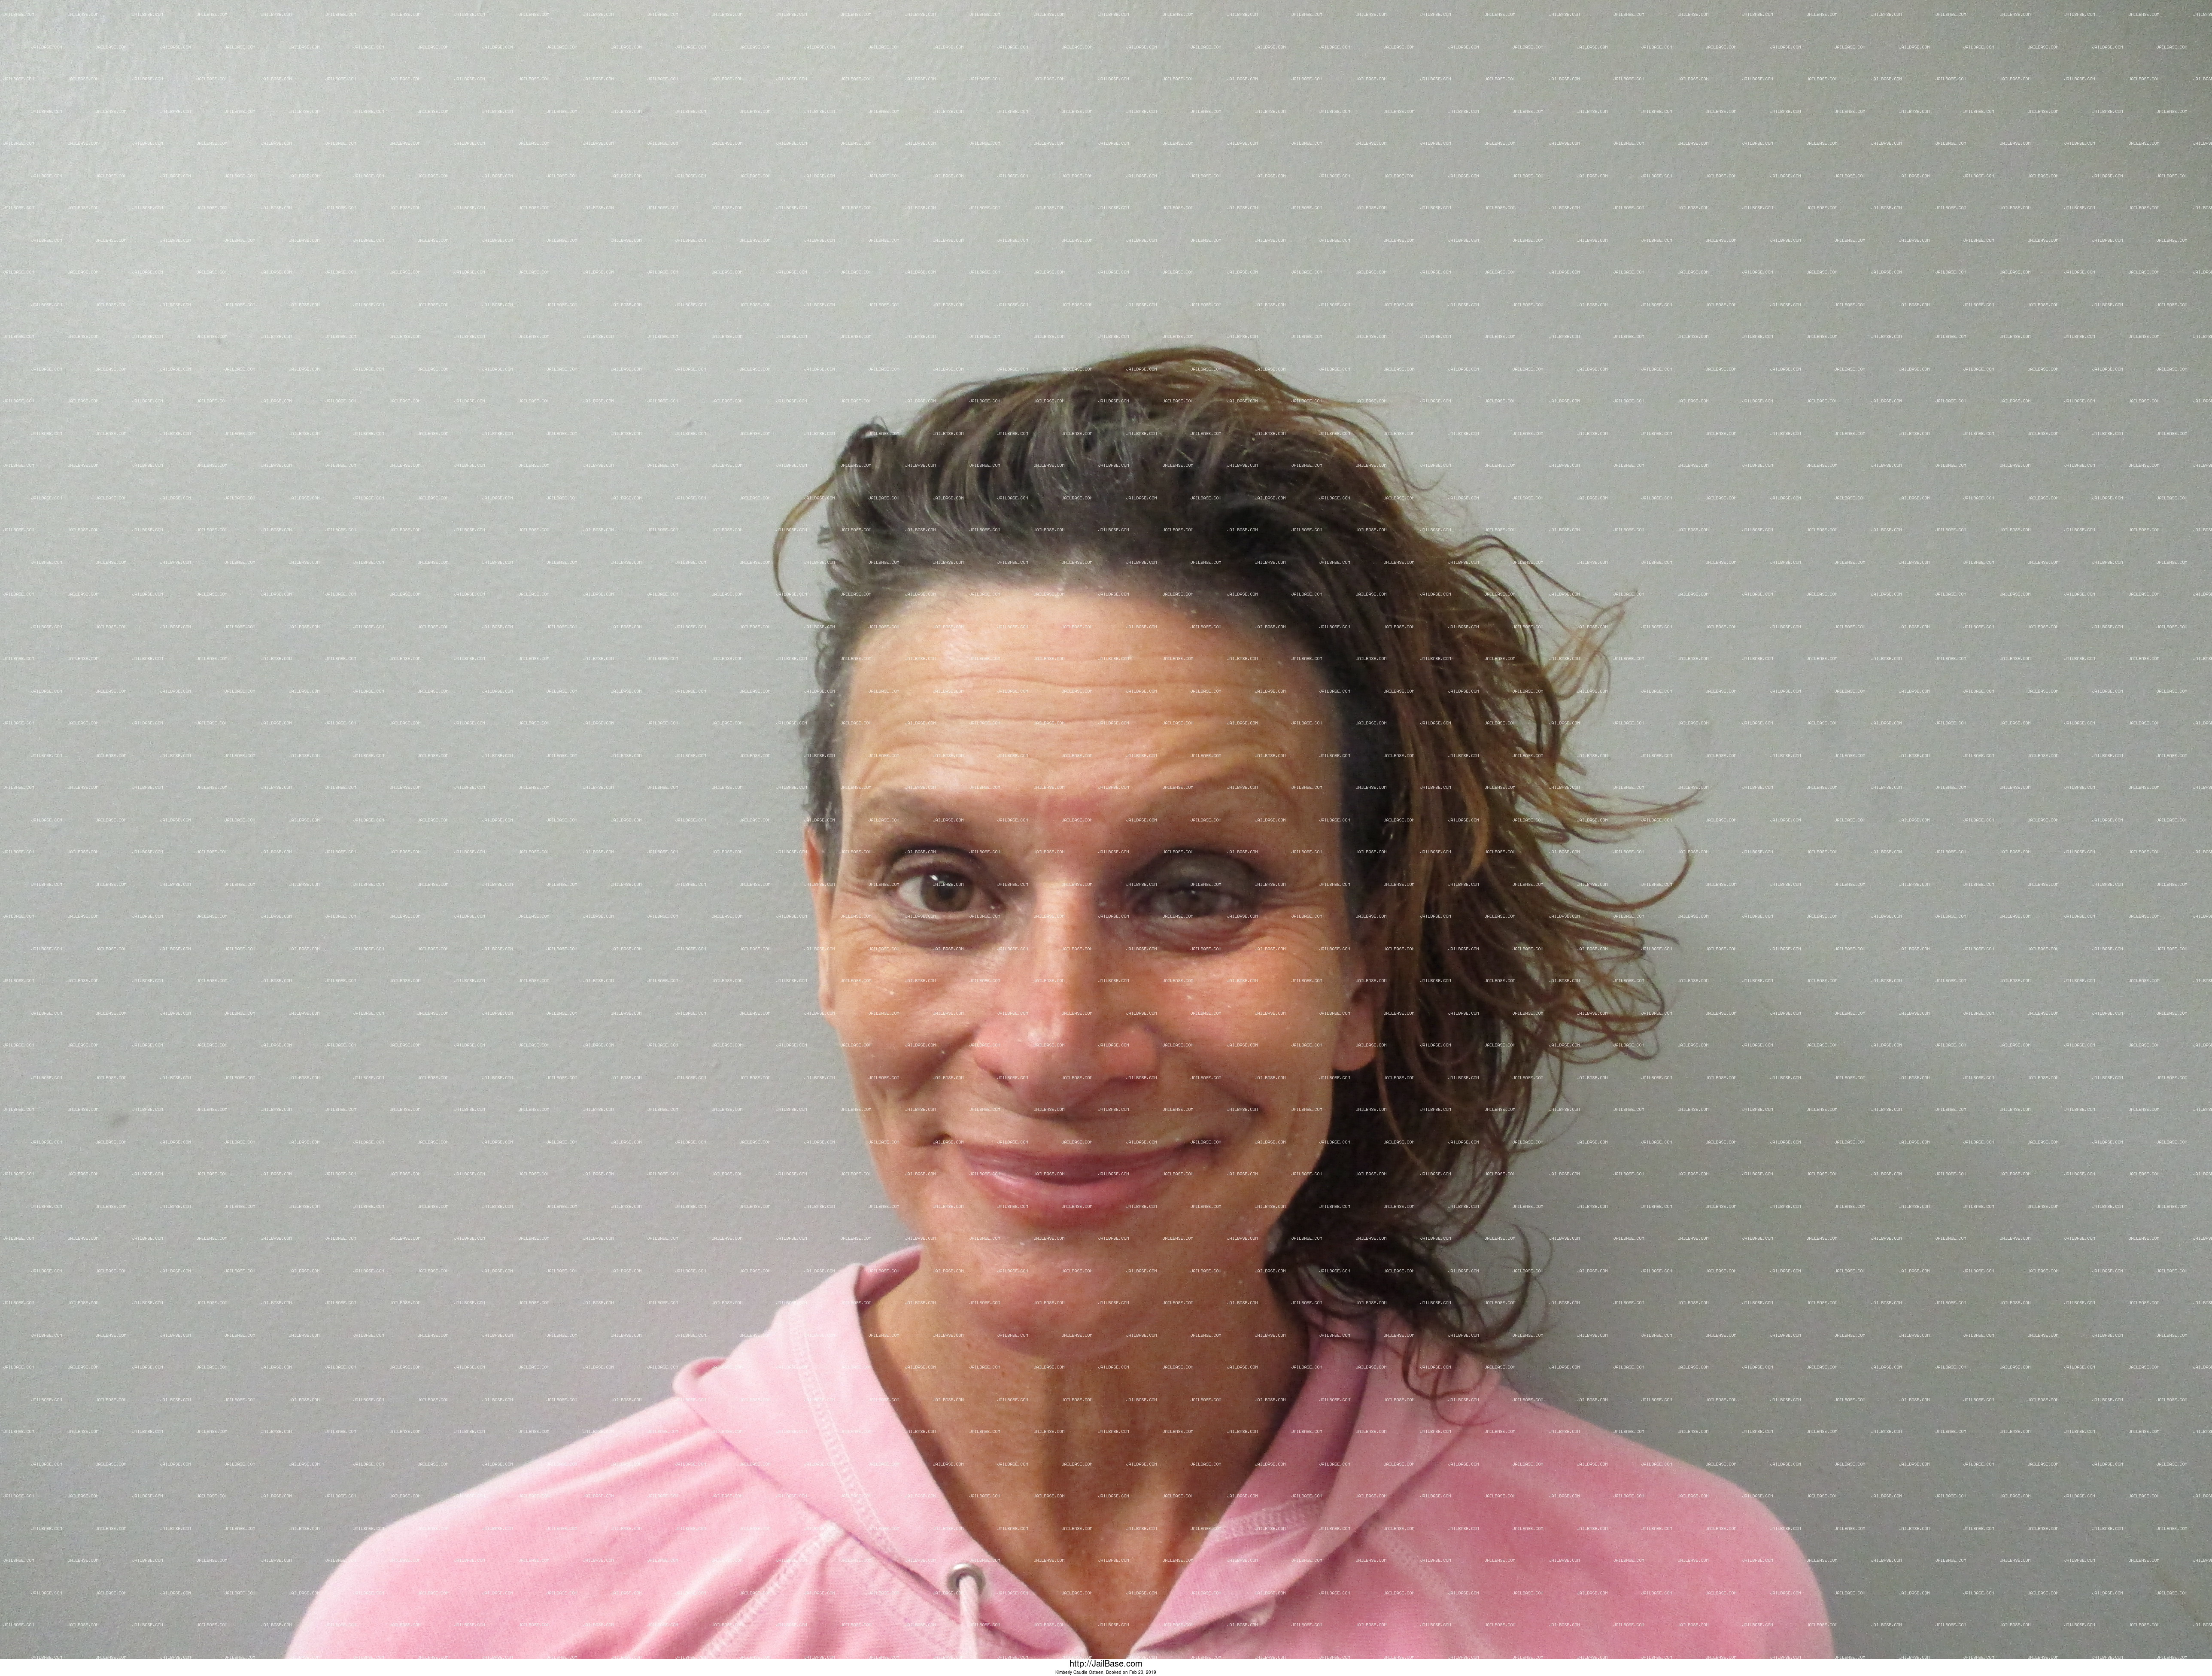 KIMBERLY CAUDLE OSTEEN mugshot picture